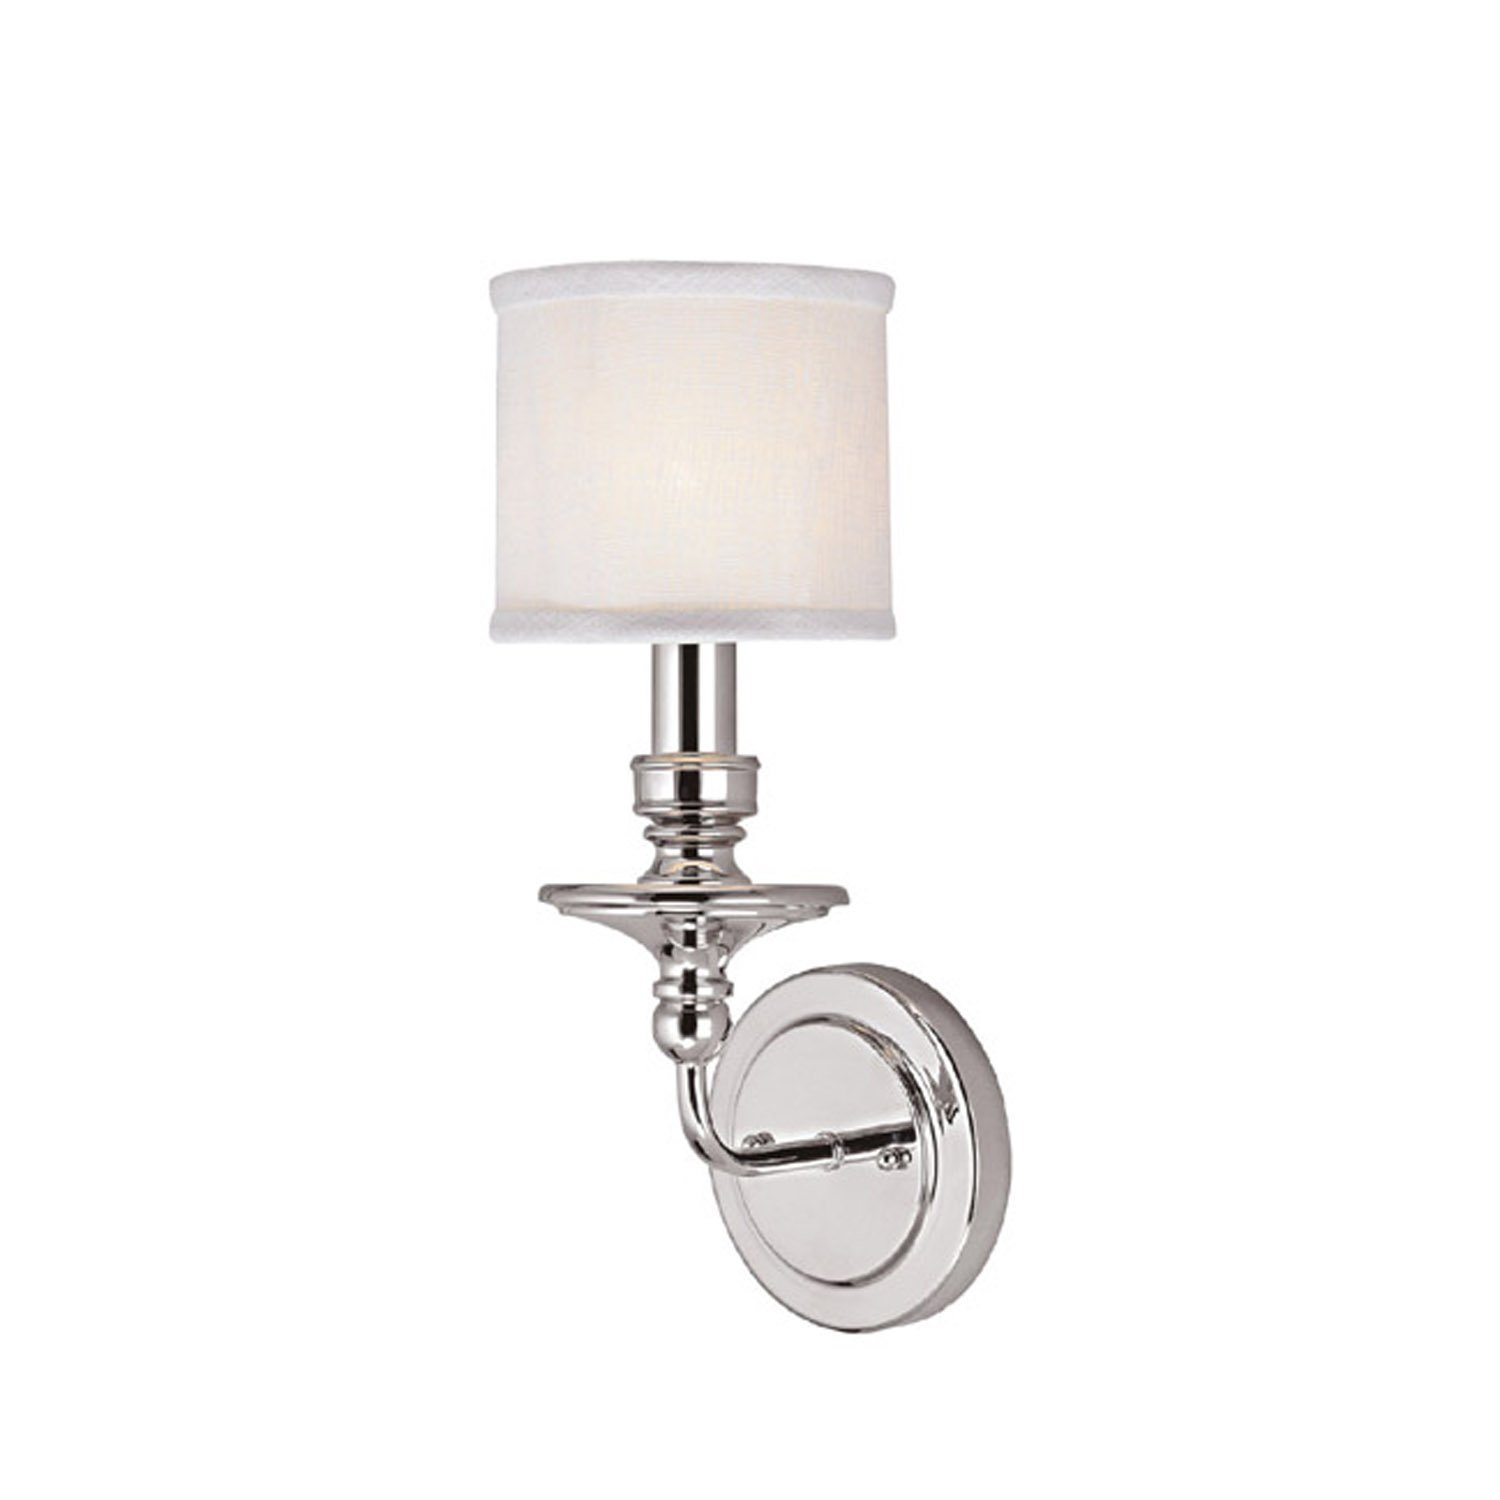 sconce nickel in hudson com foundrylighting light product pn wall polished valley yorktown